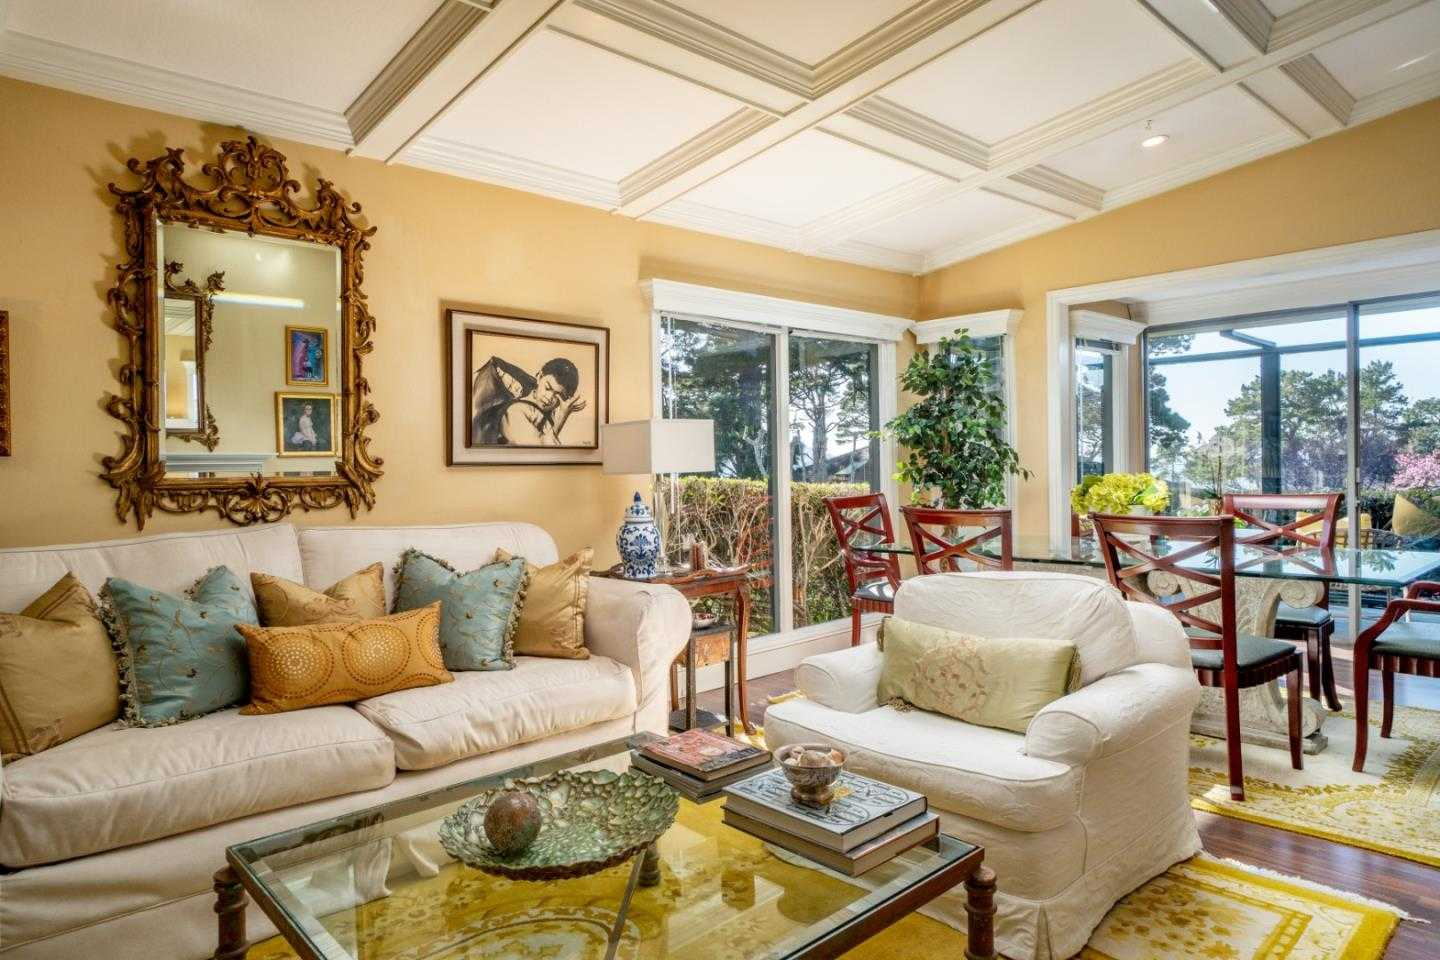 $868,000 - 2Br/2Ba -  for Sale in Carmel